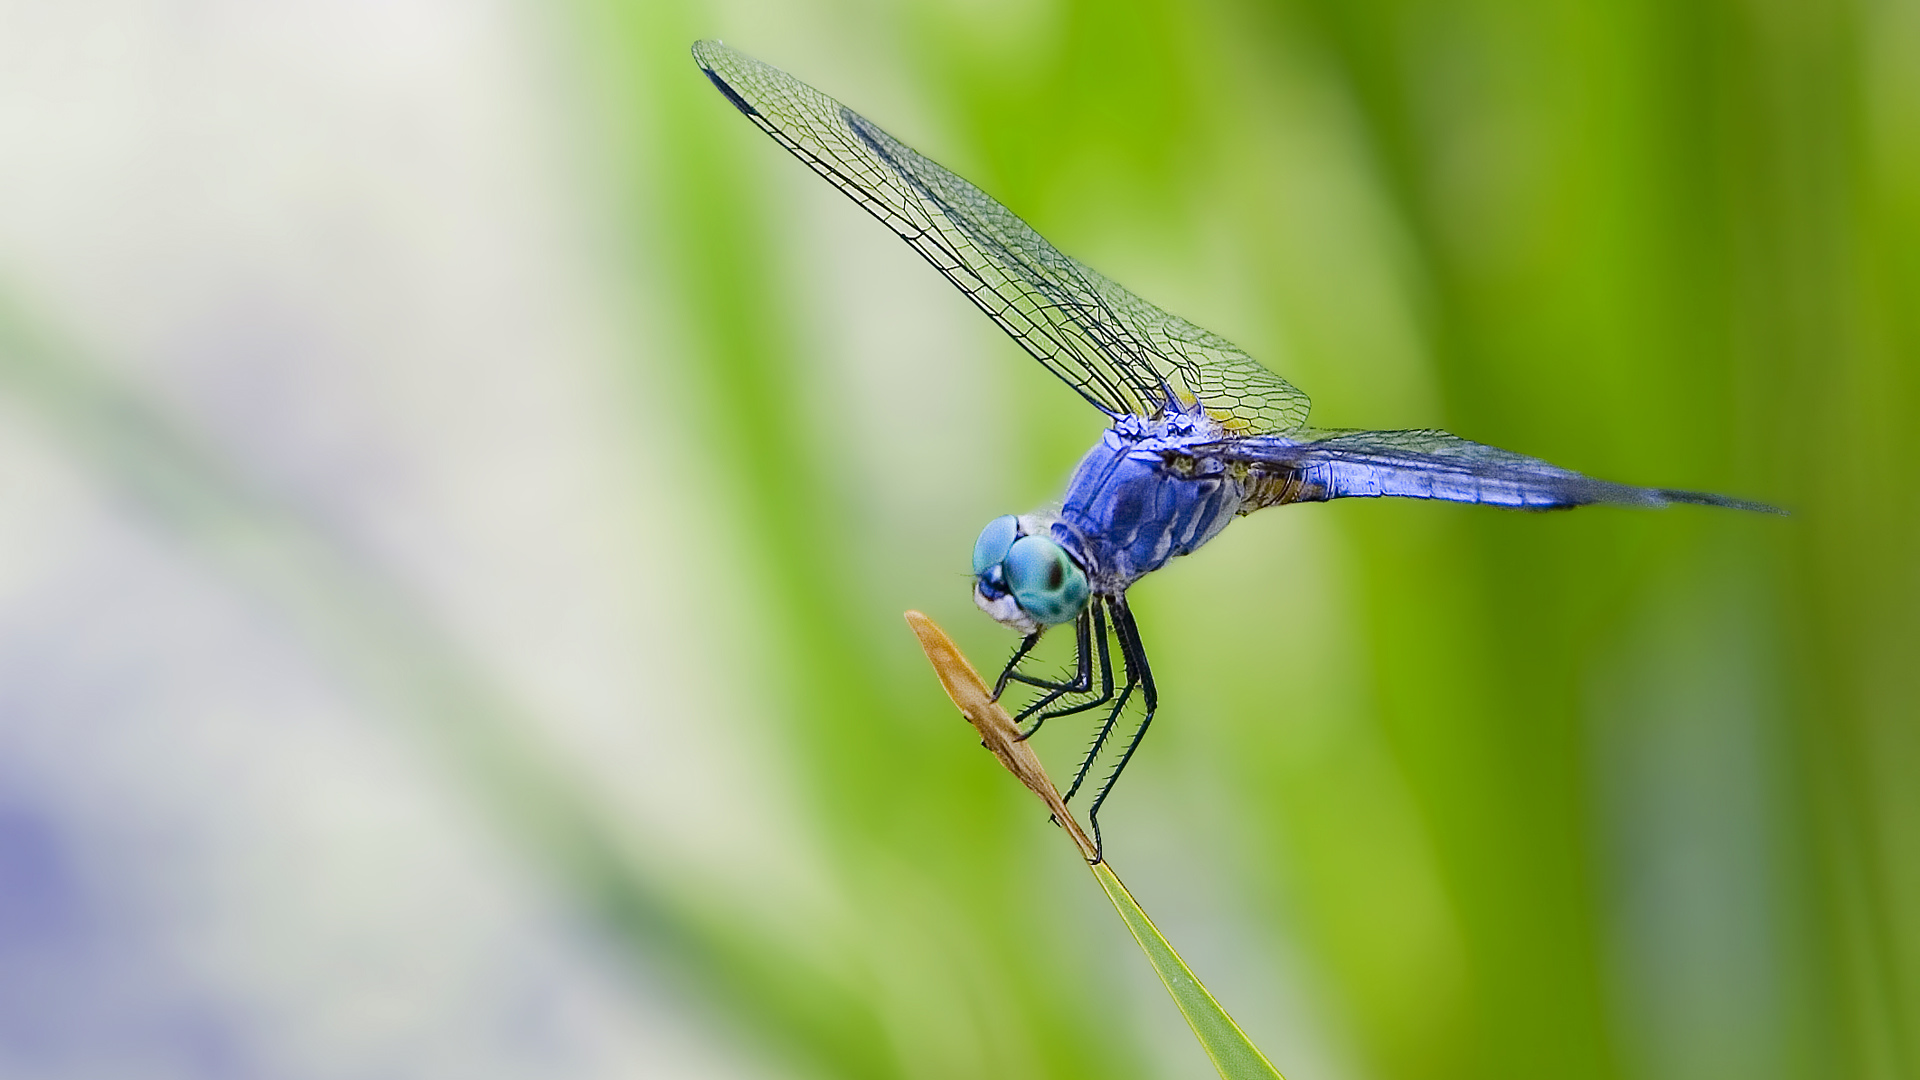 Animal-Dragonfly-wallpaper-wp3802398